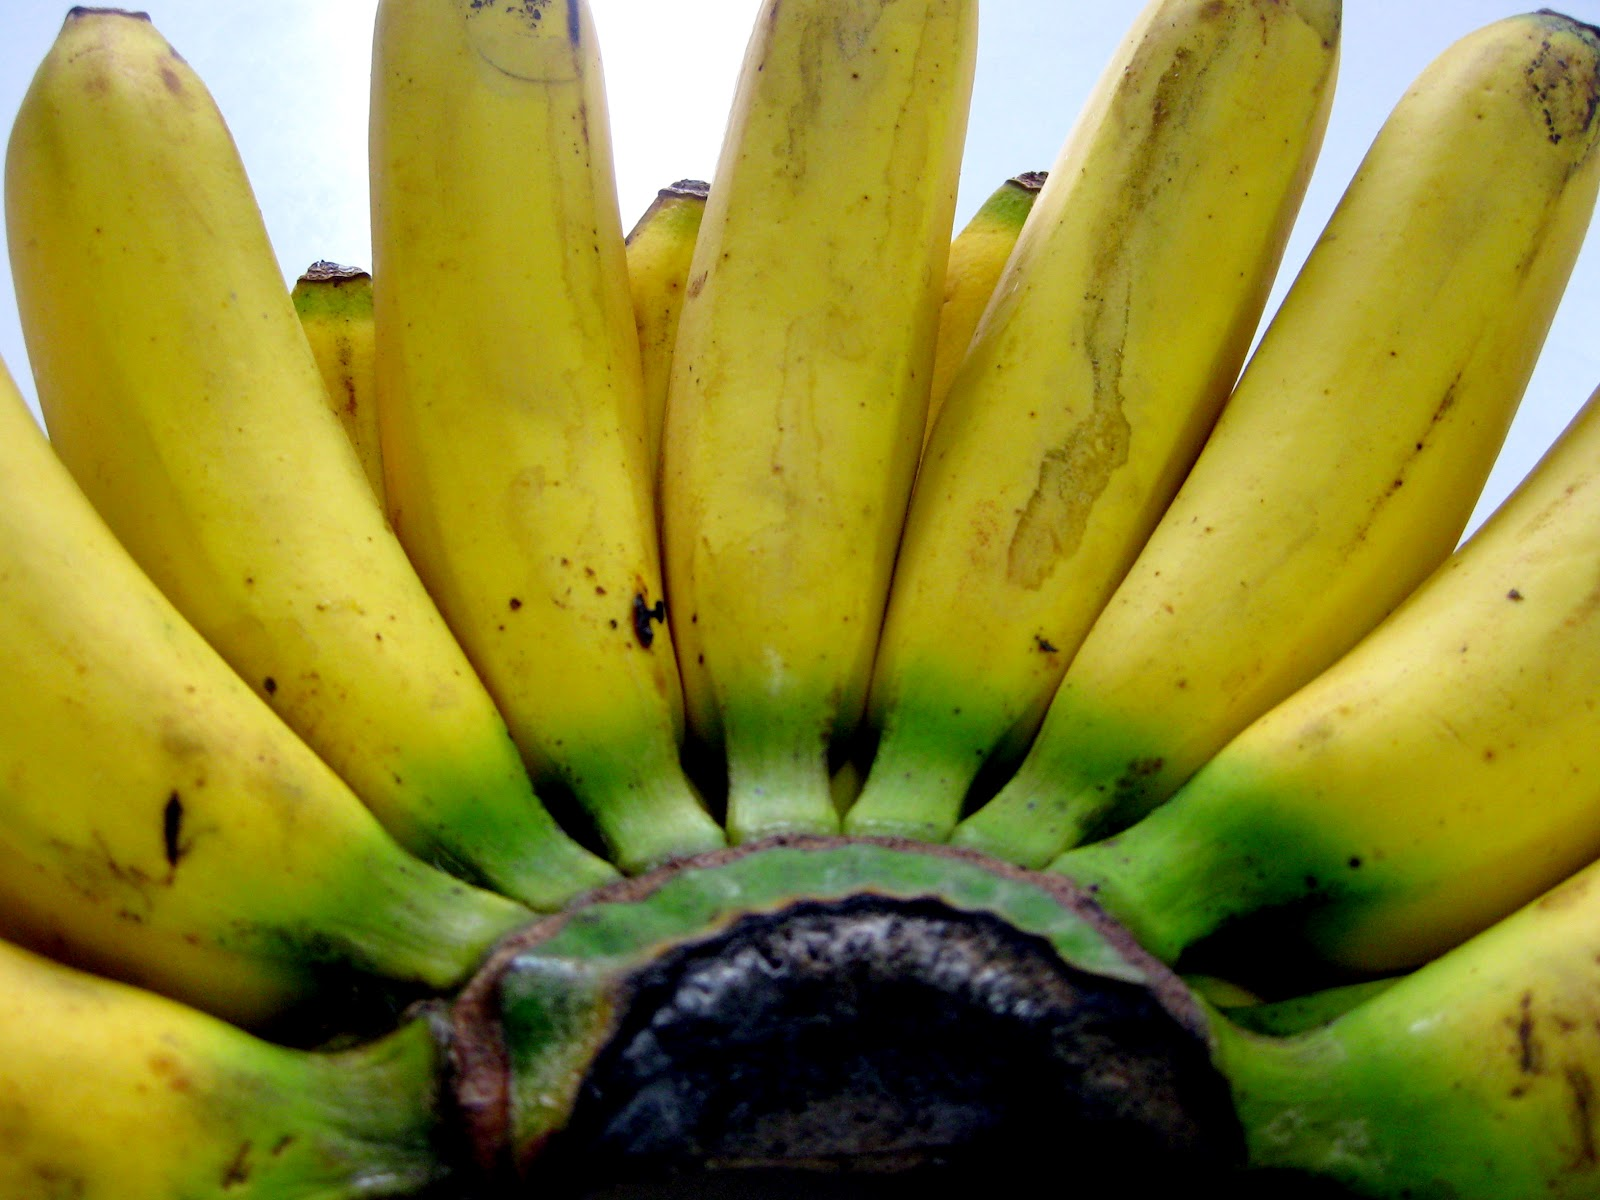 ... the banana is among the five fruits that can augment sex drive and ...